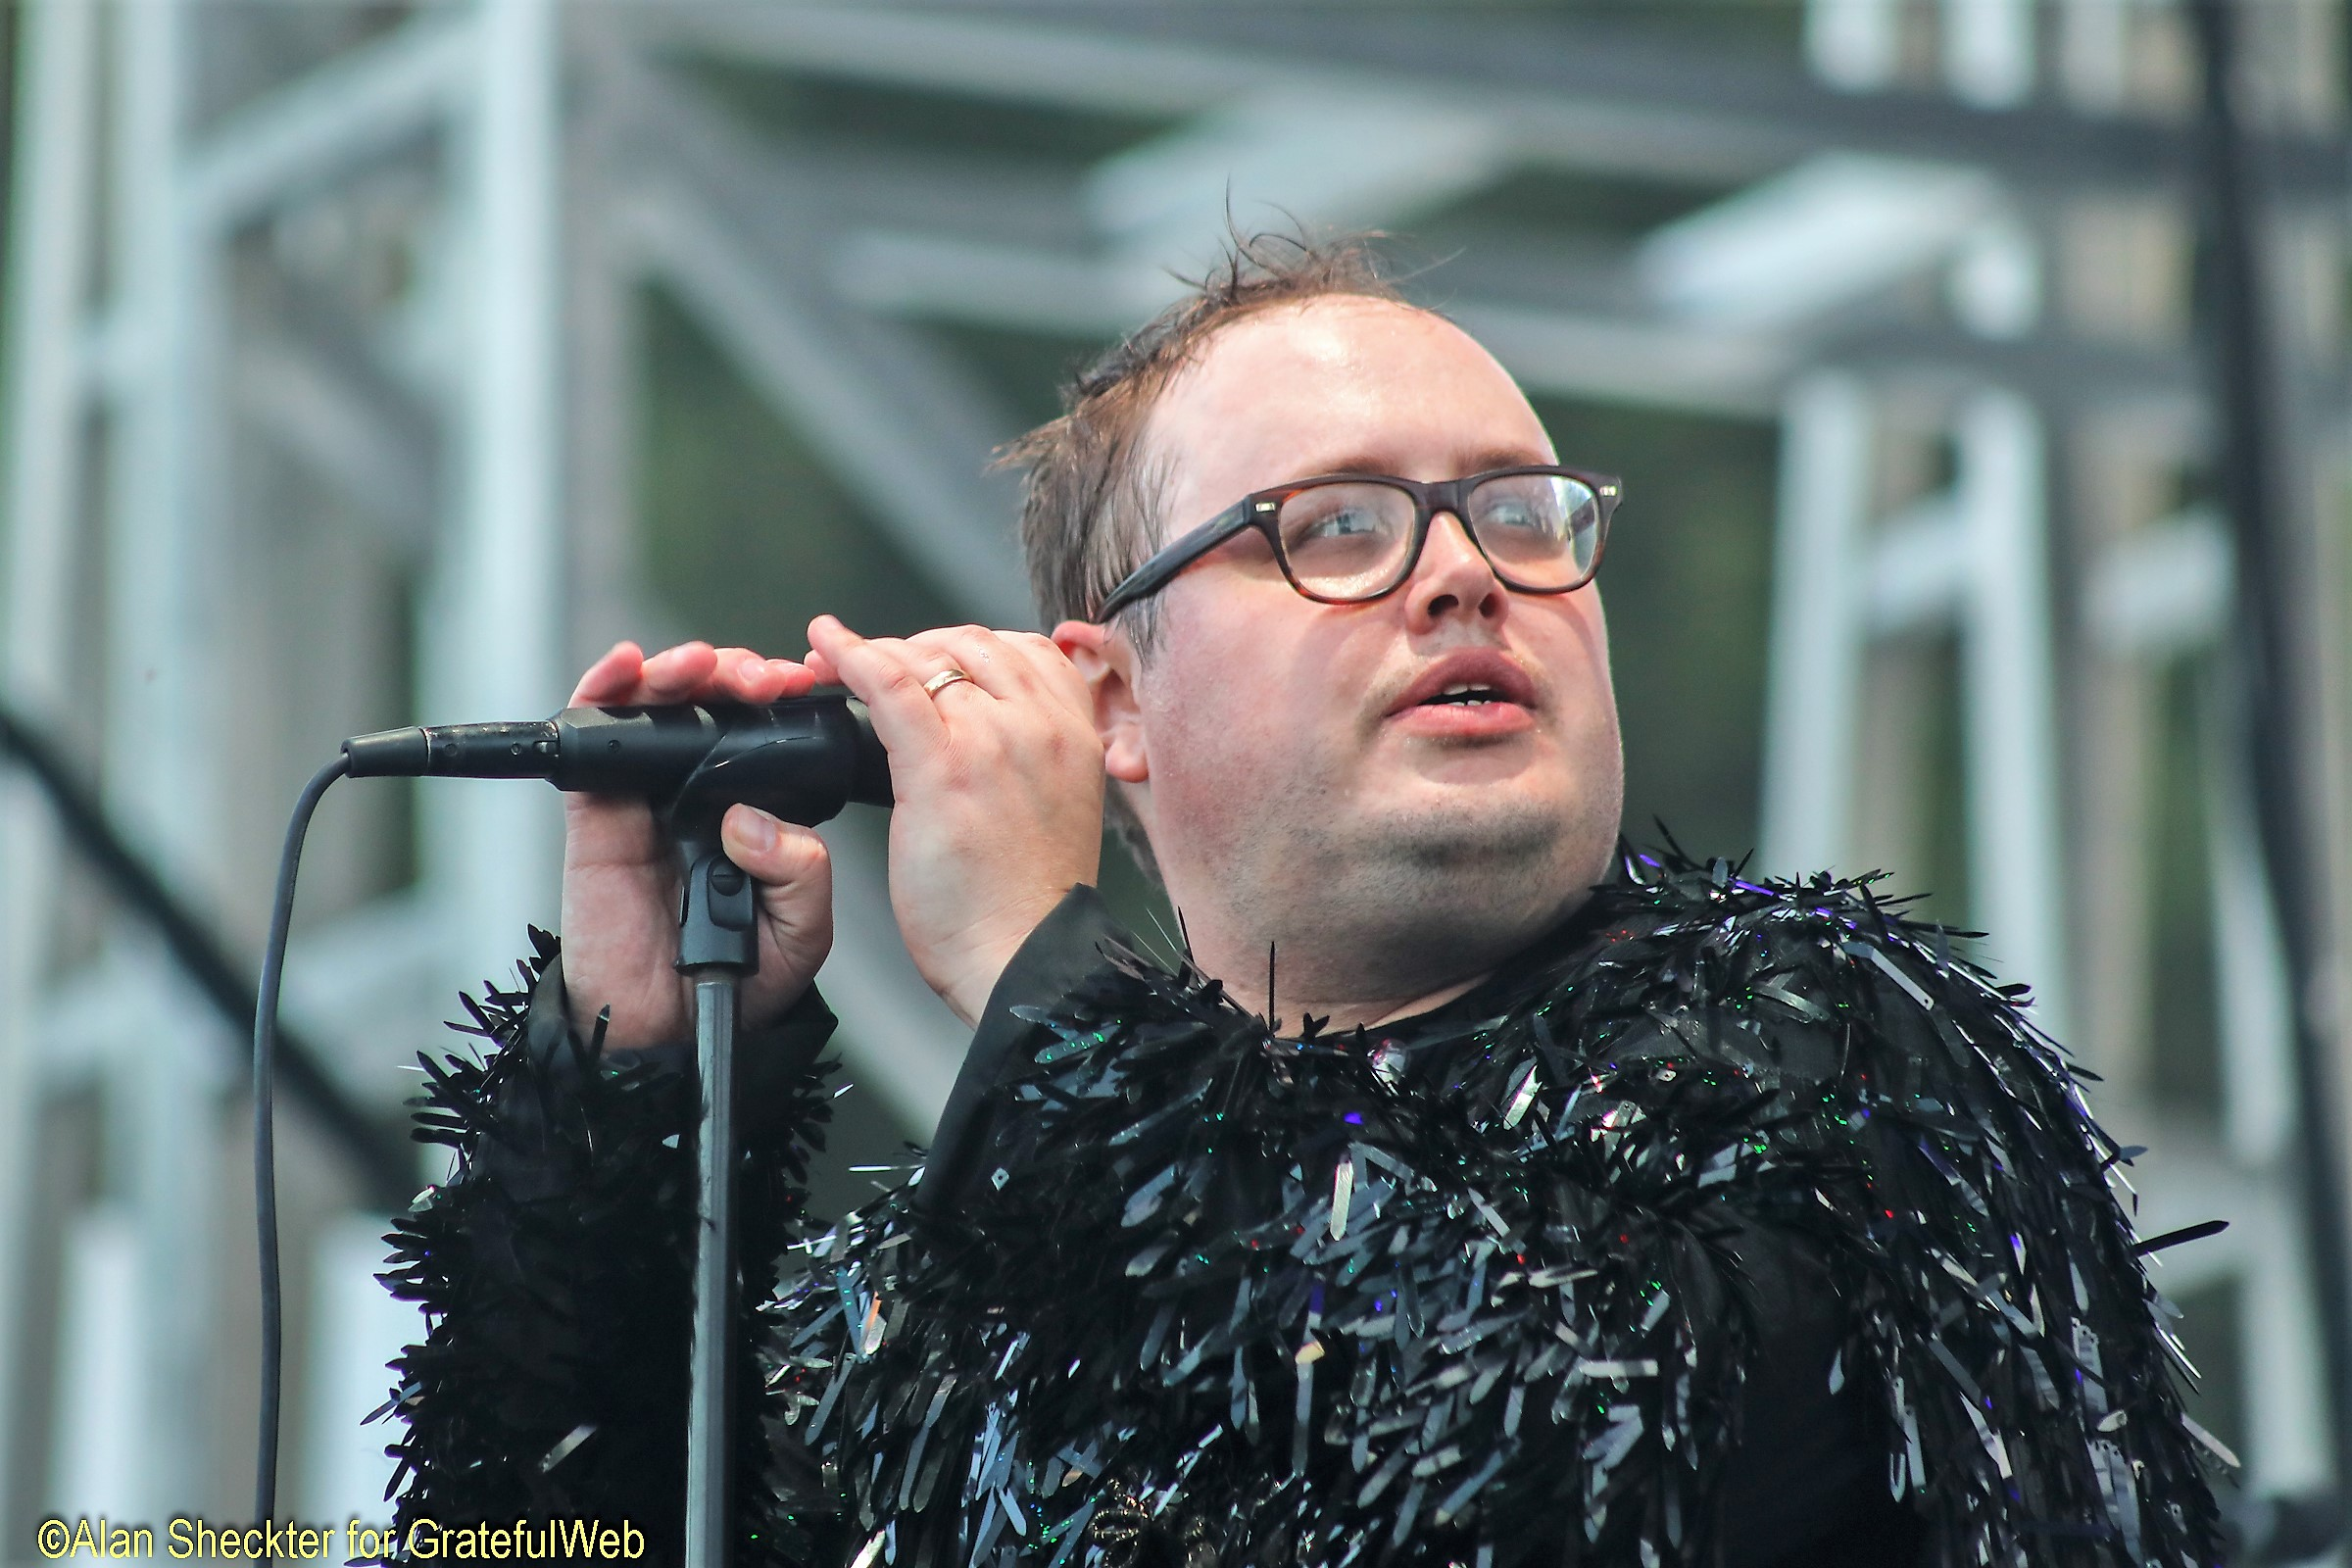 St. Paul & the Broken Bones' Paul Janeway